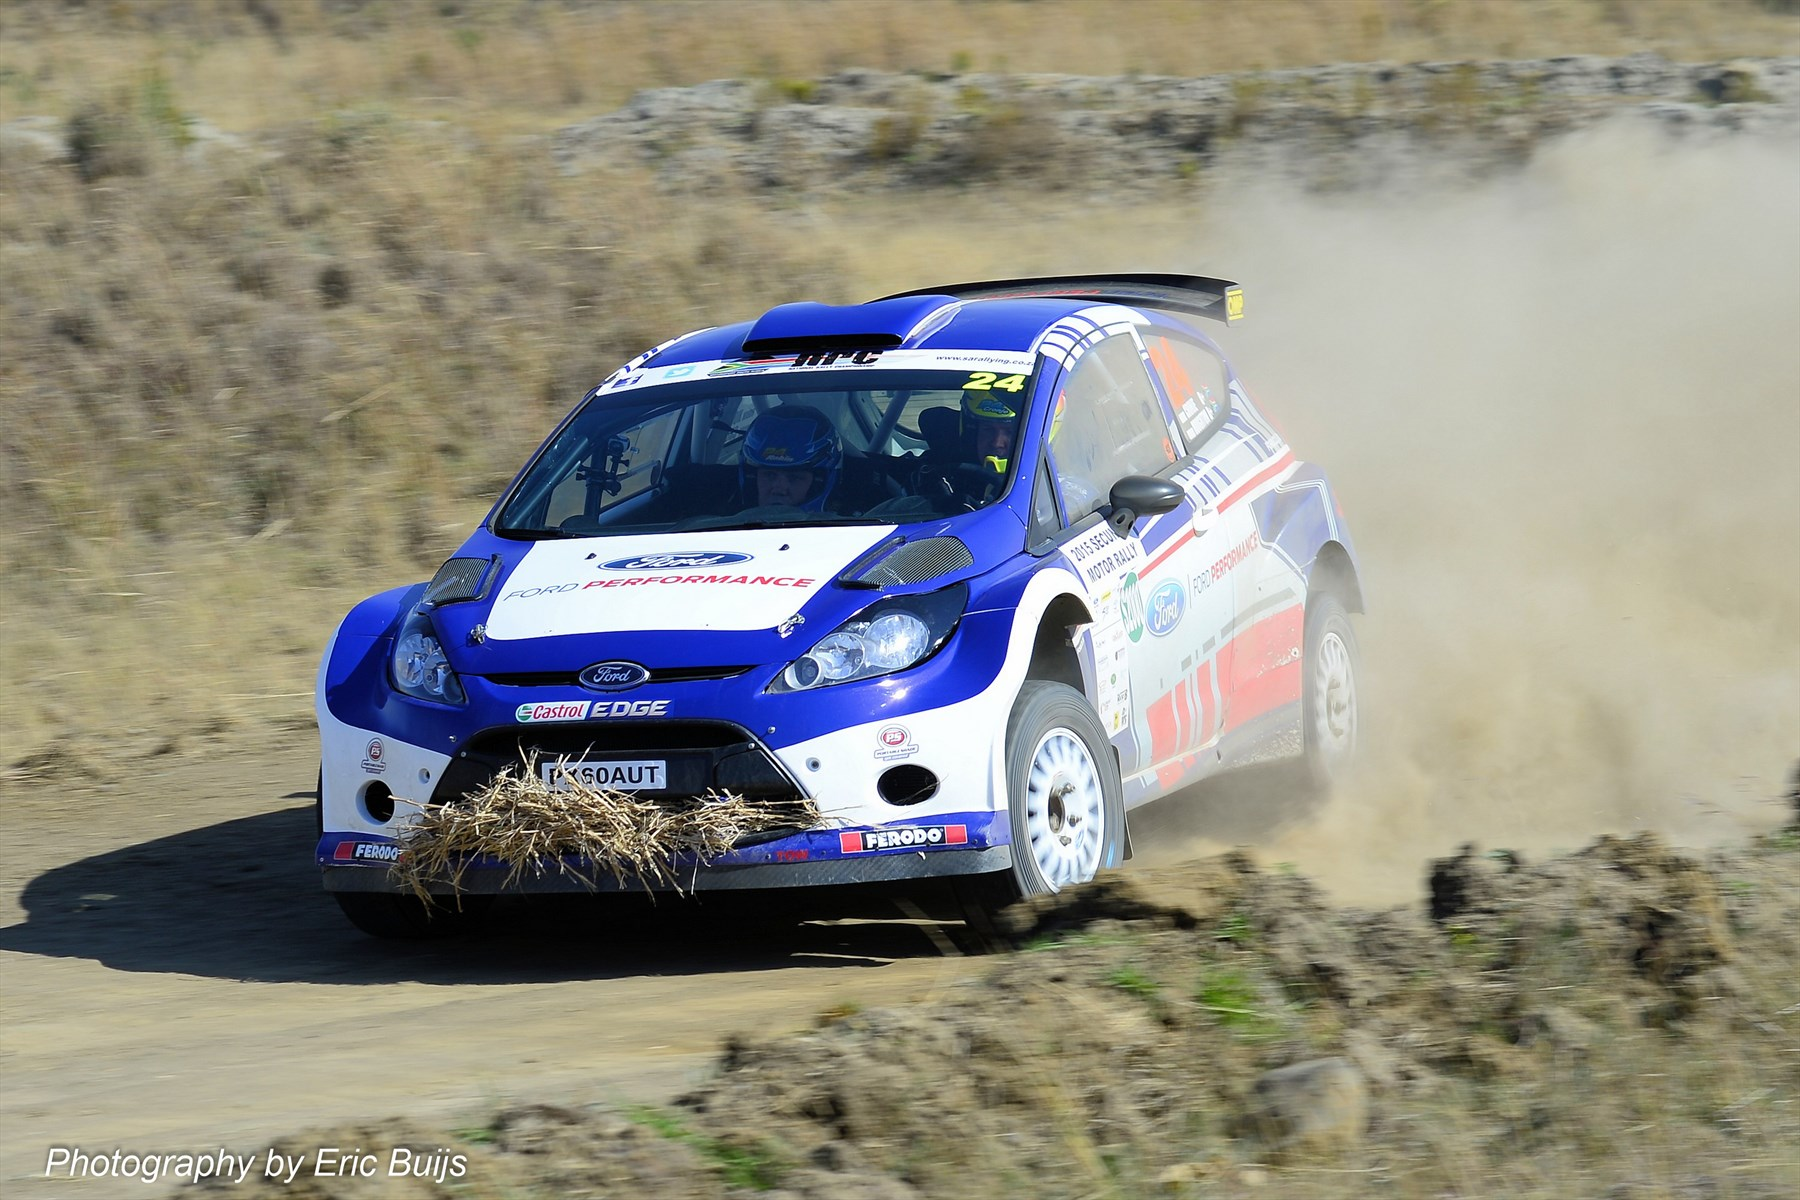 ford-performance-at-secunda-rally-5_1800x1800-395877